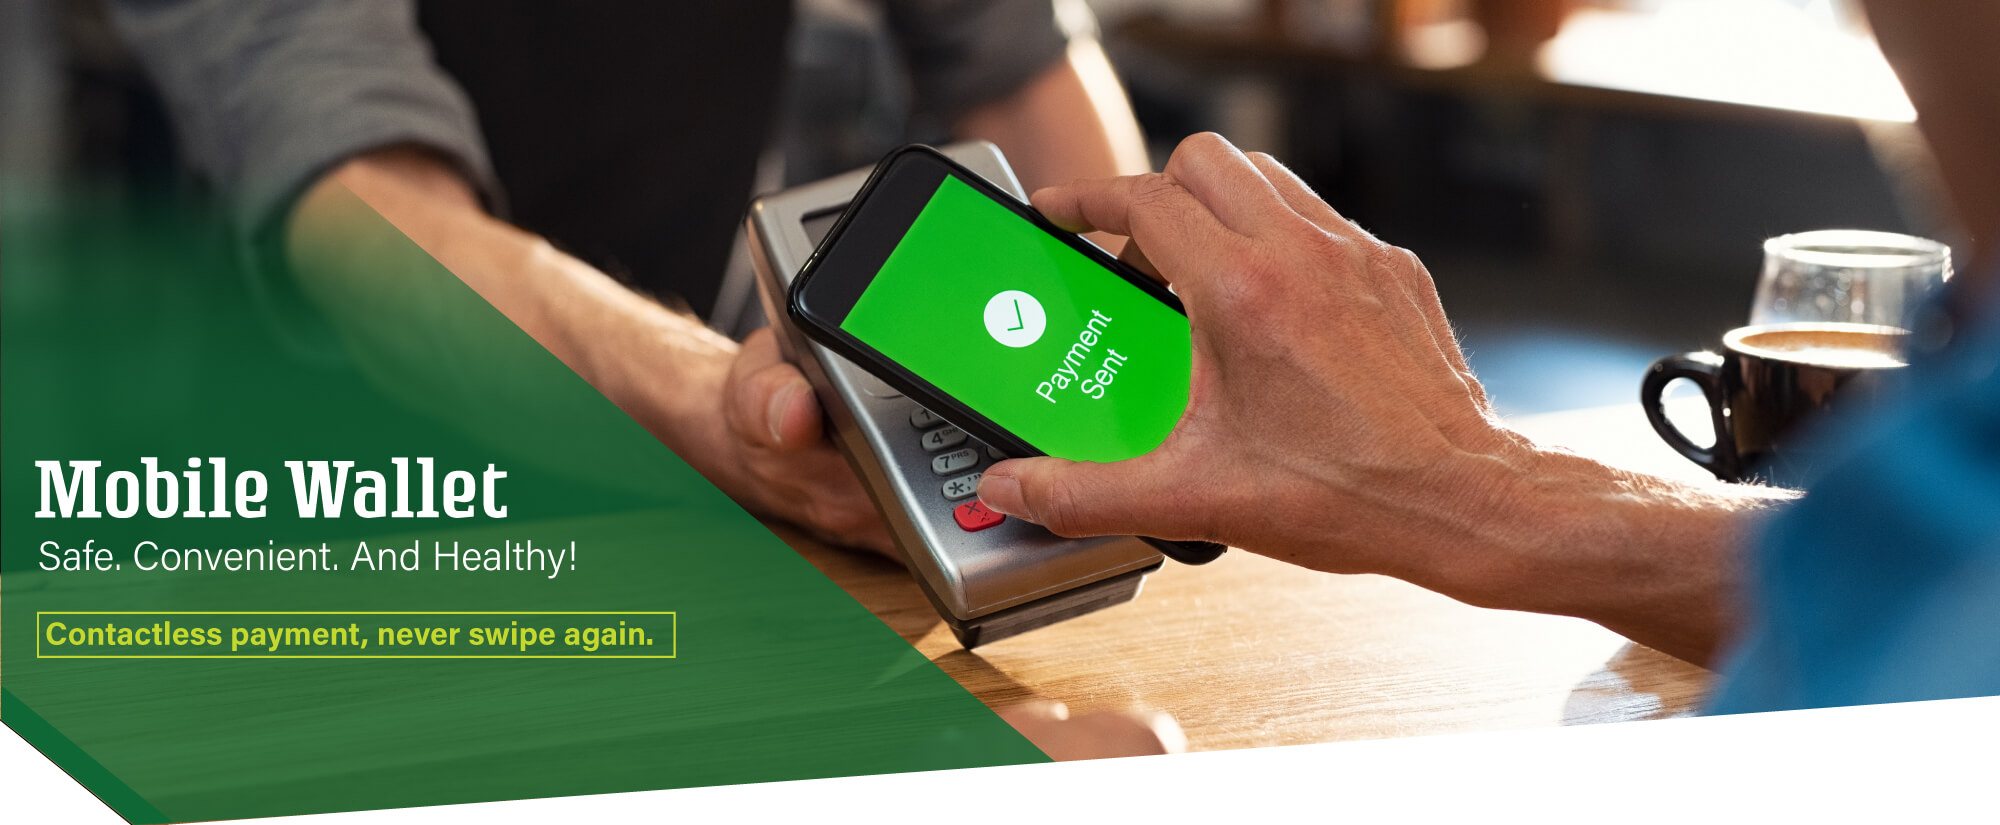 Mobile Wallet is Safe, Convenient, and Healthy too!